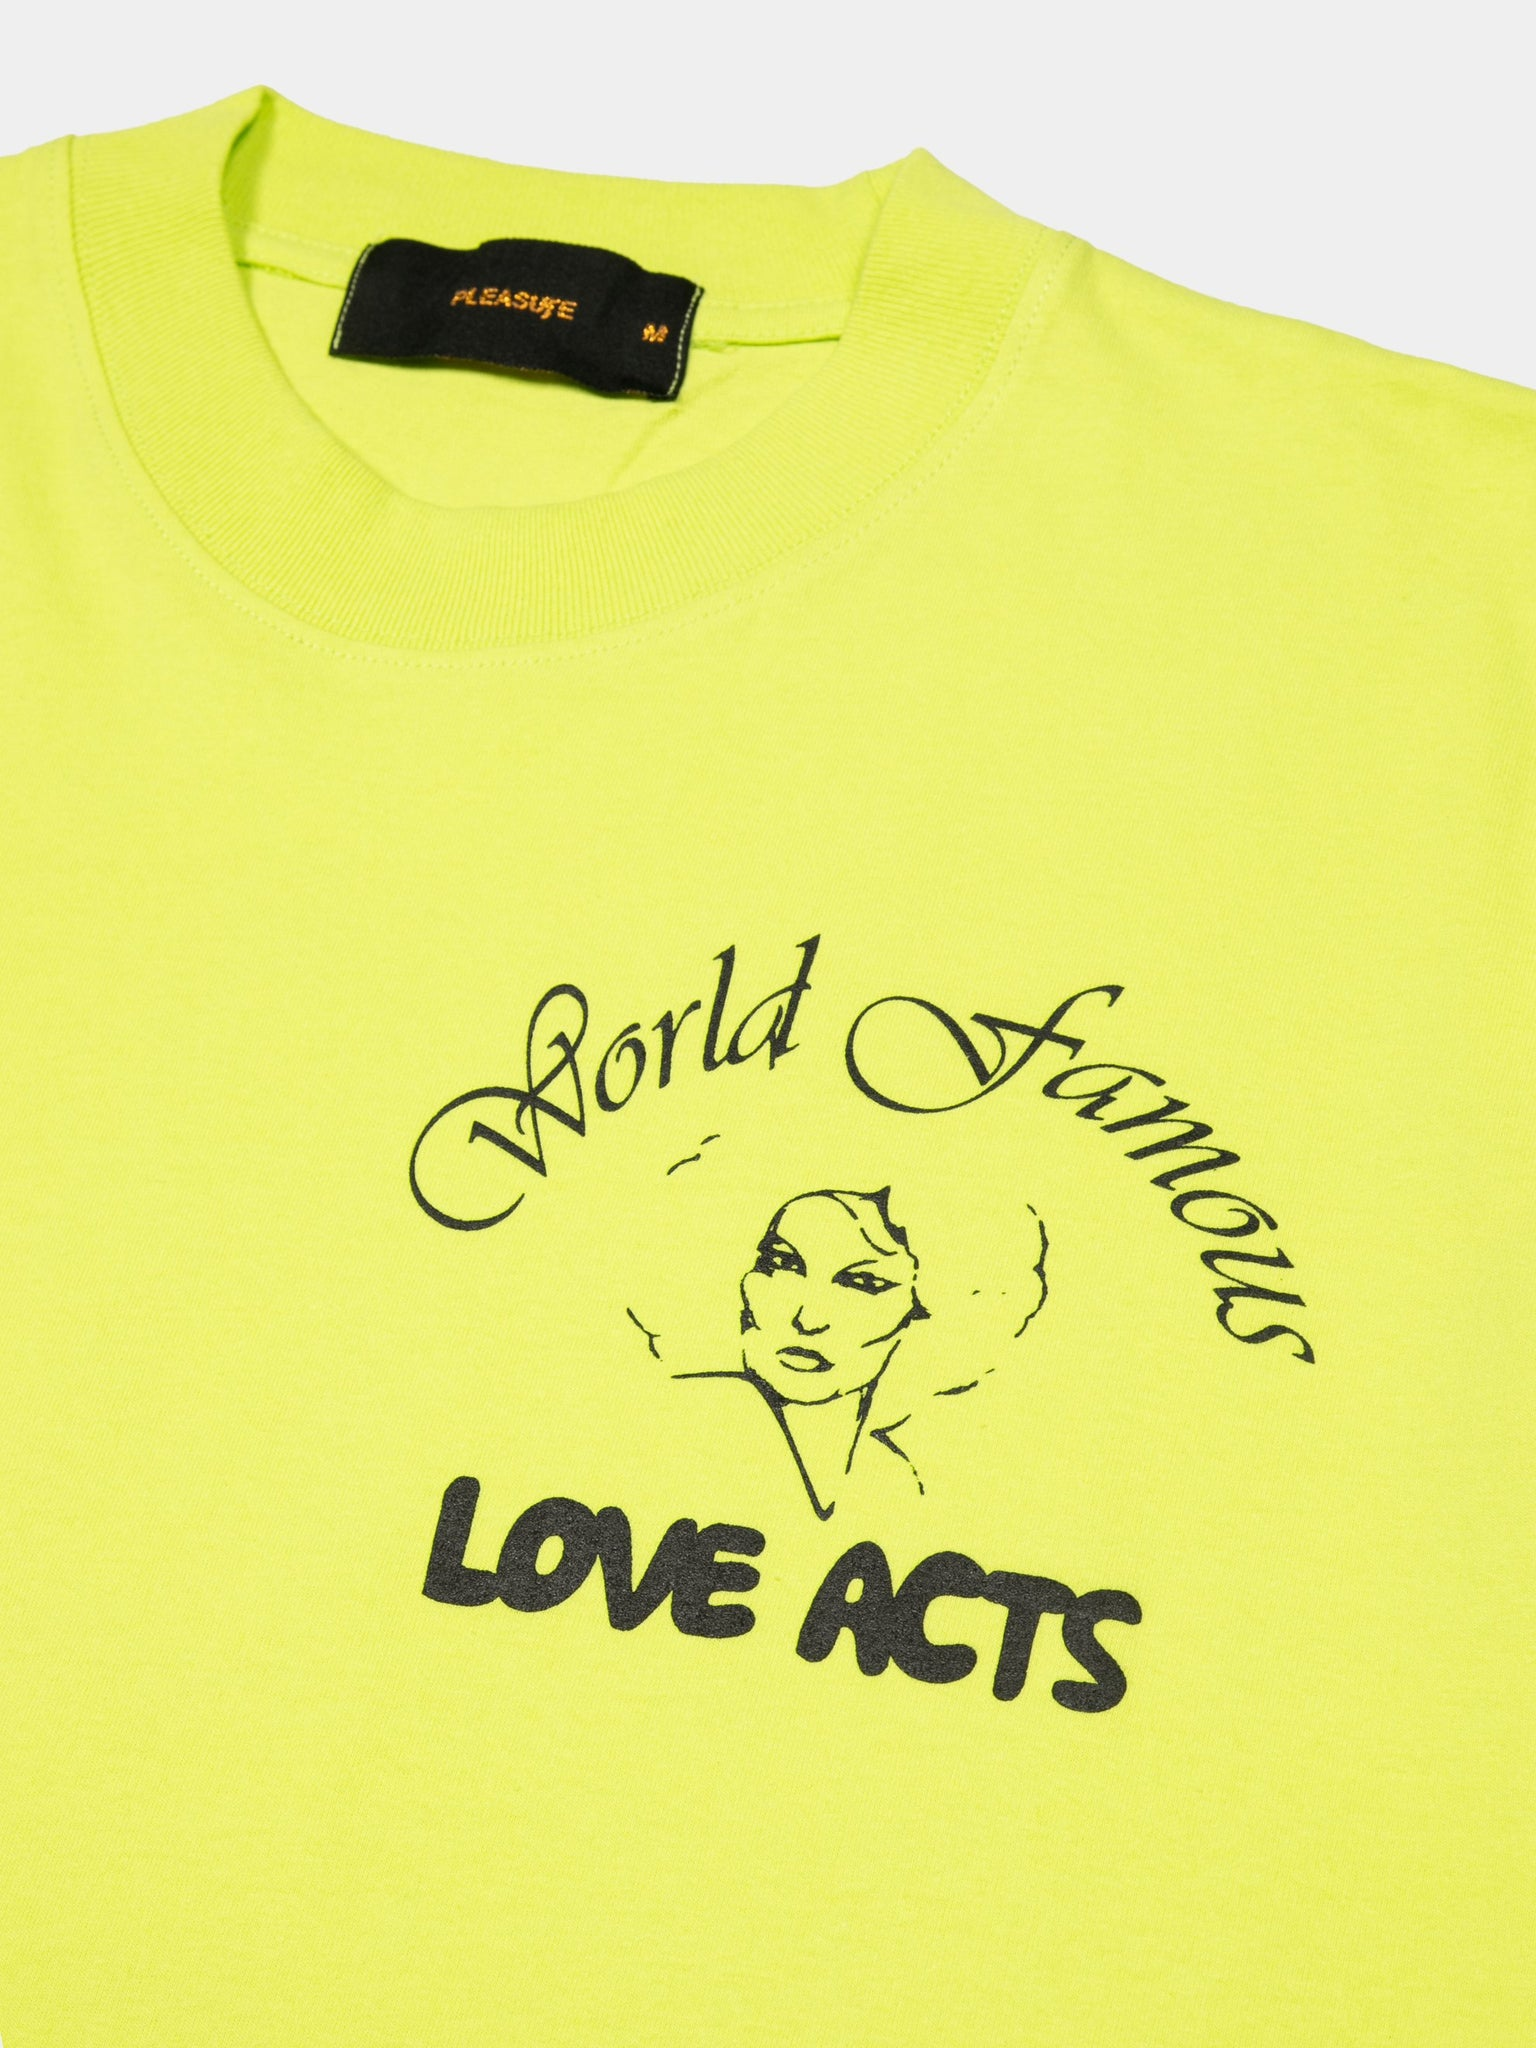 love-acts-t-shirt